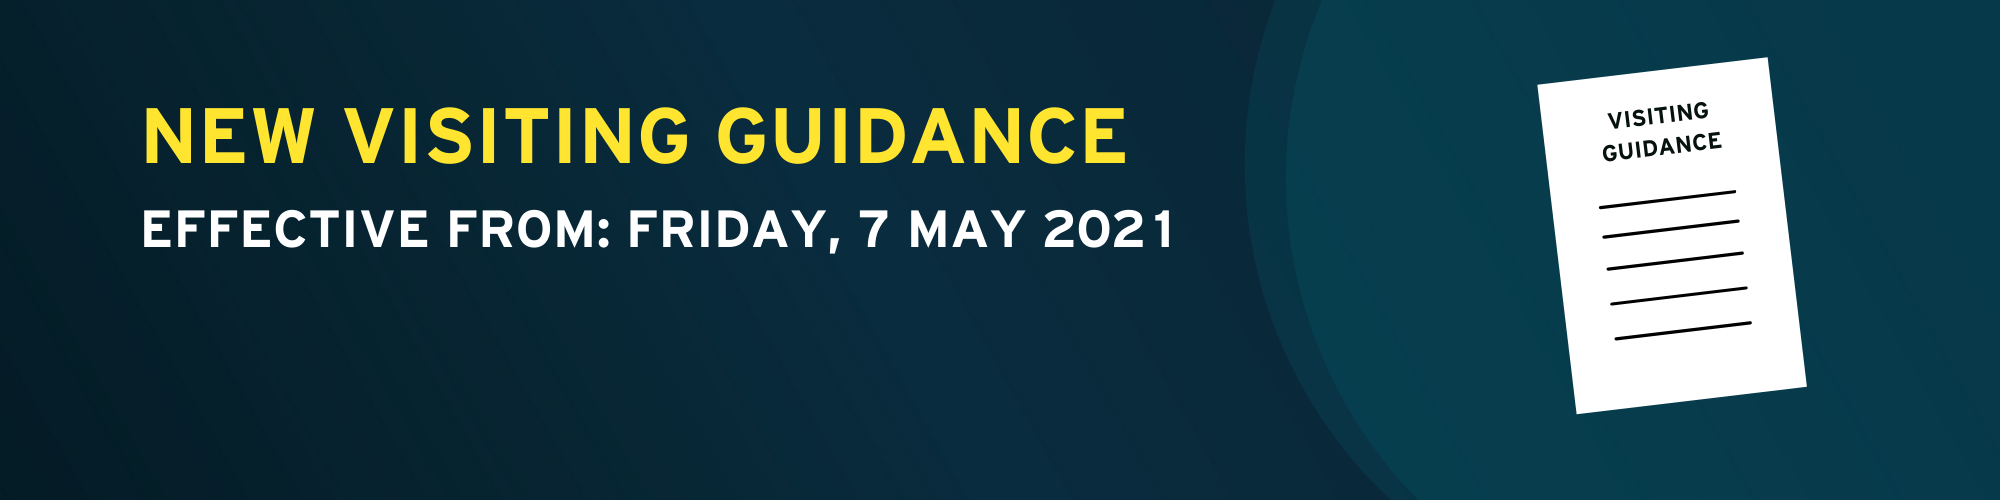 Click hee for read the new visiting guidance